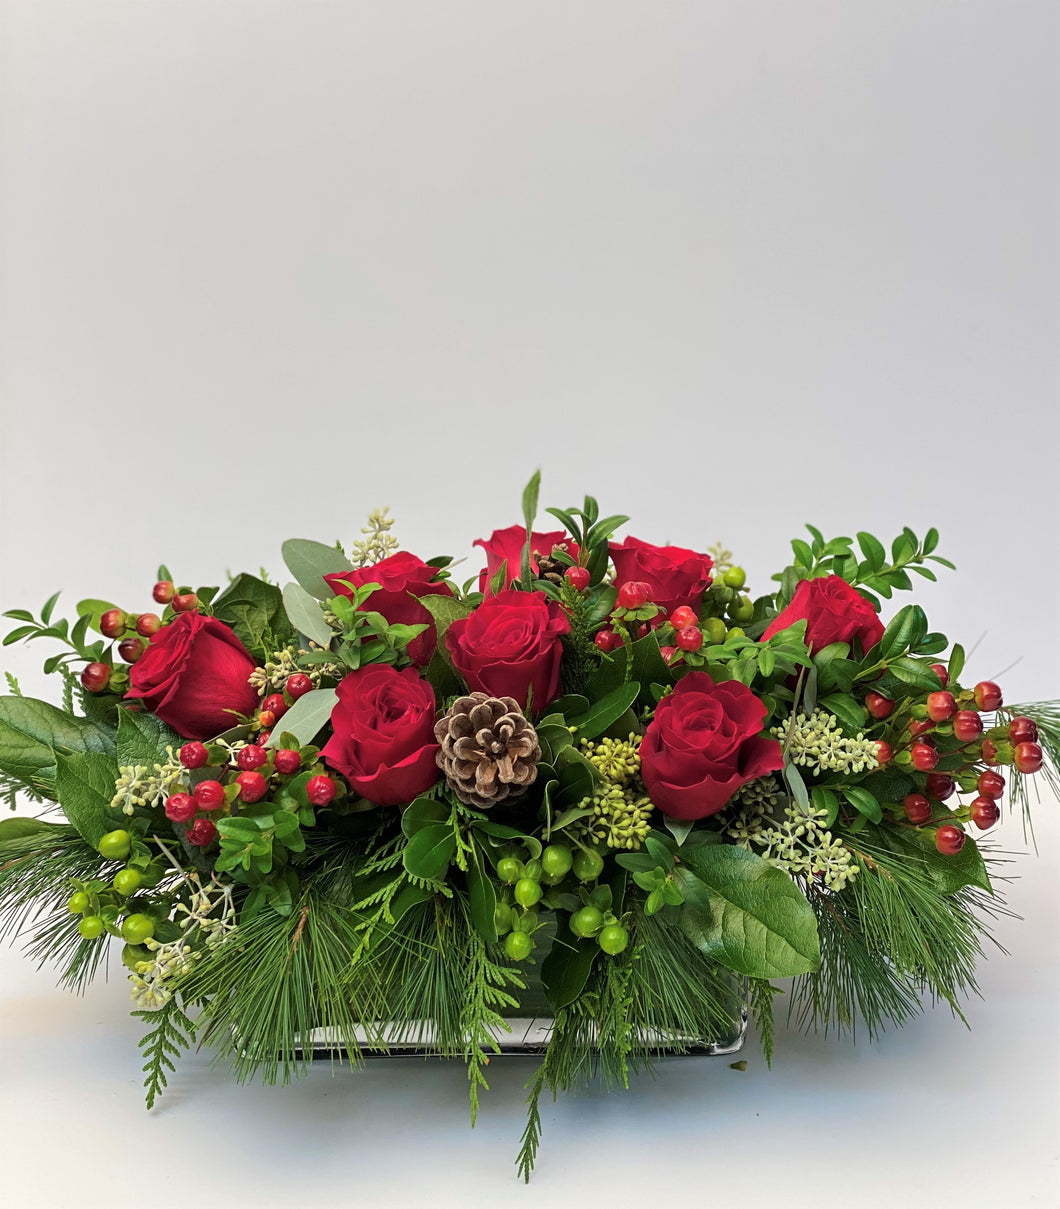 X34 - Classic Red Rose Holiday Rectangular Centerpiece - Flowerplustoronto